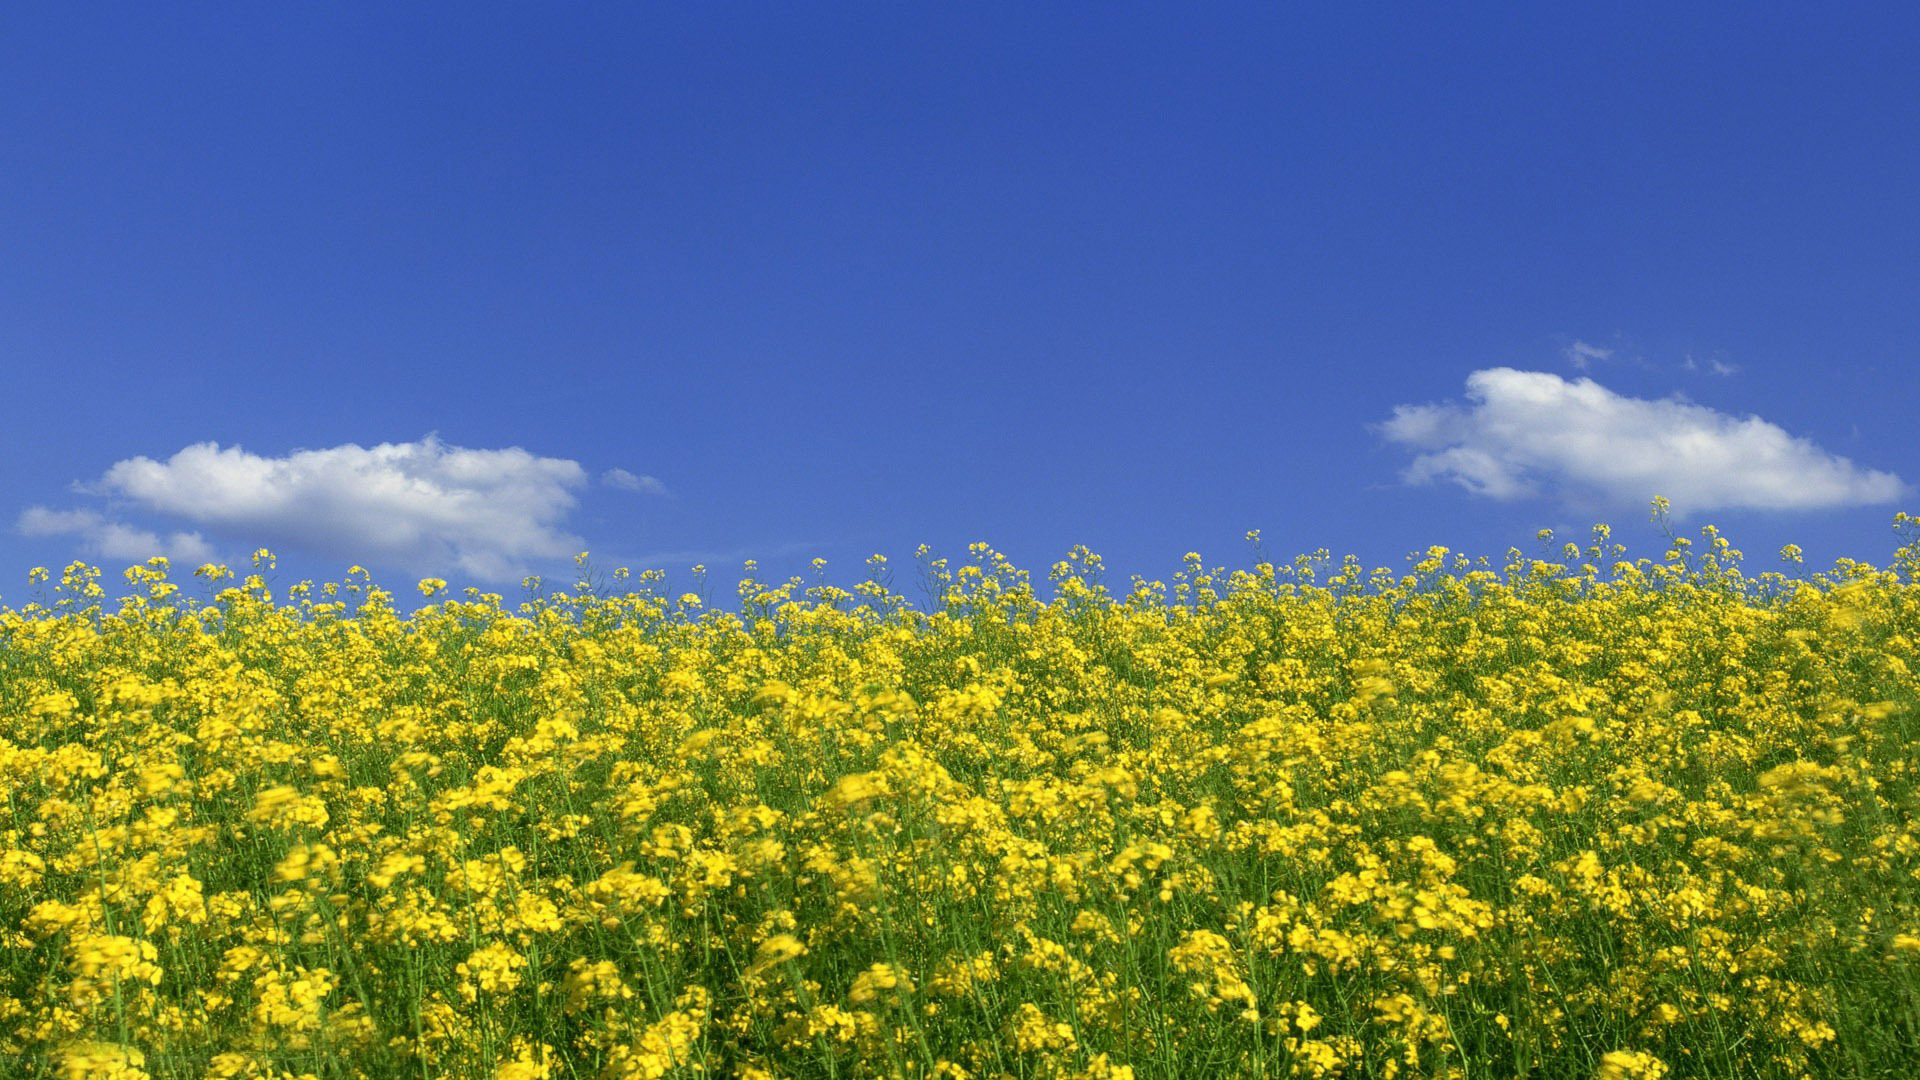 Mustard Plant Wallpaper High Quality Is Cool Wallpapers